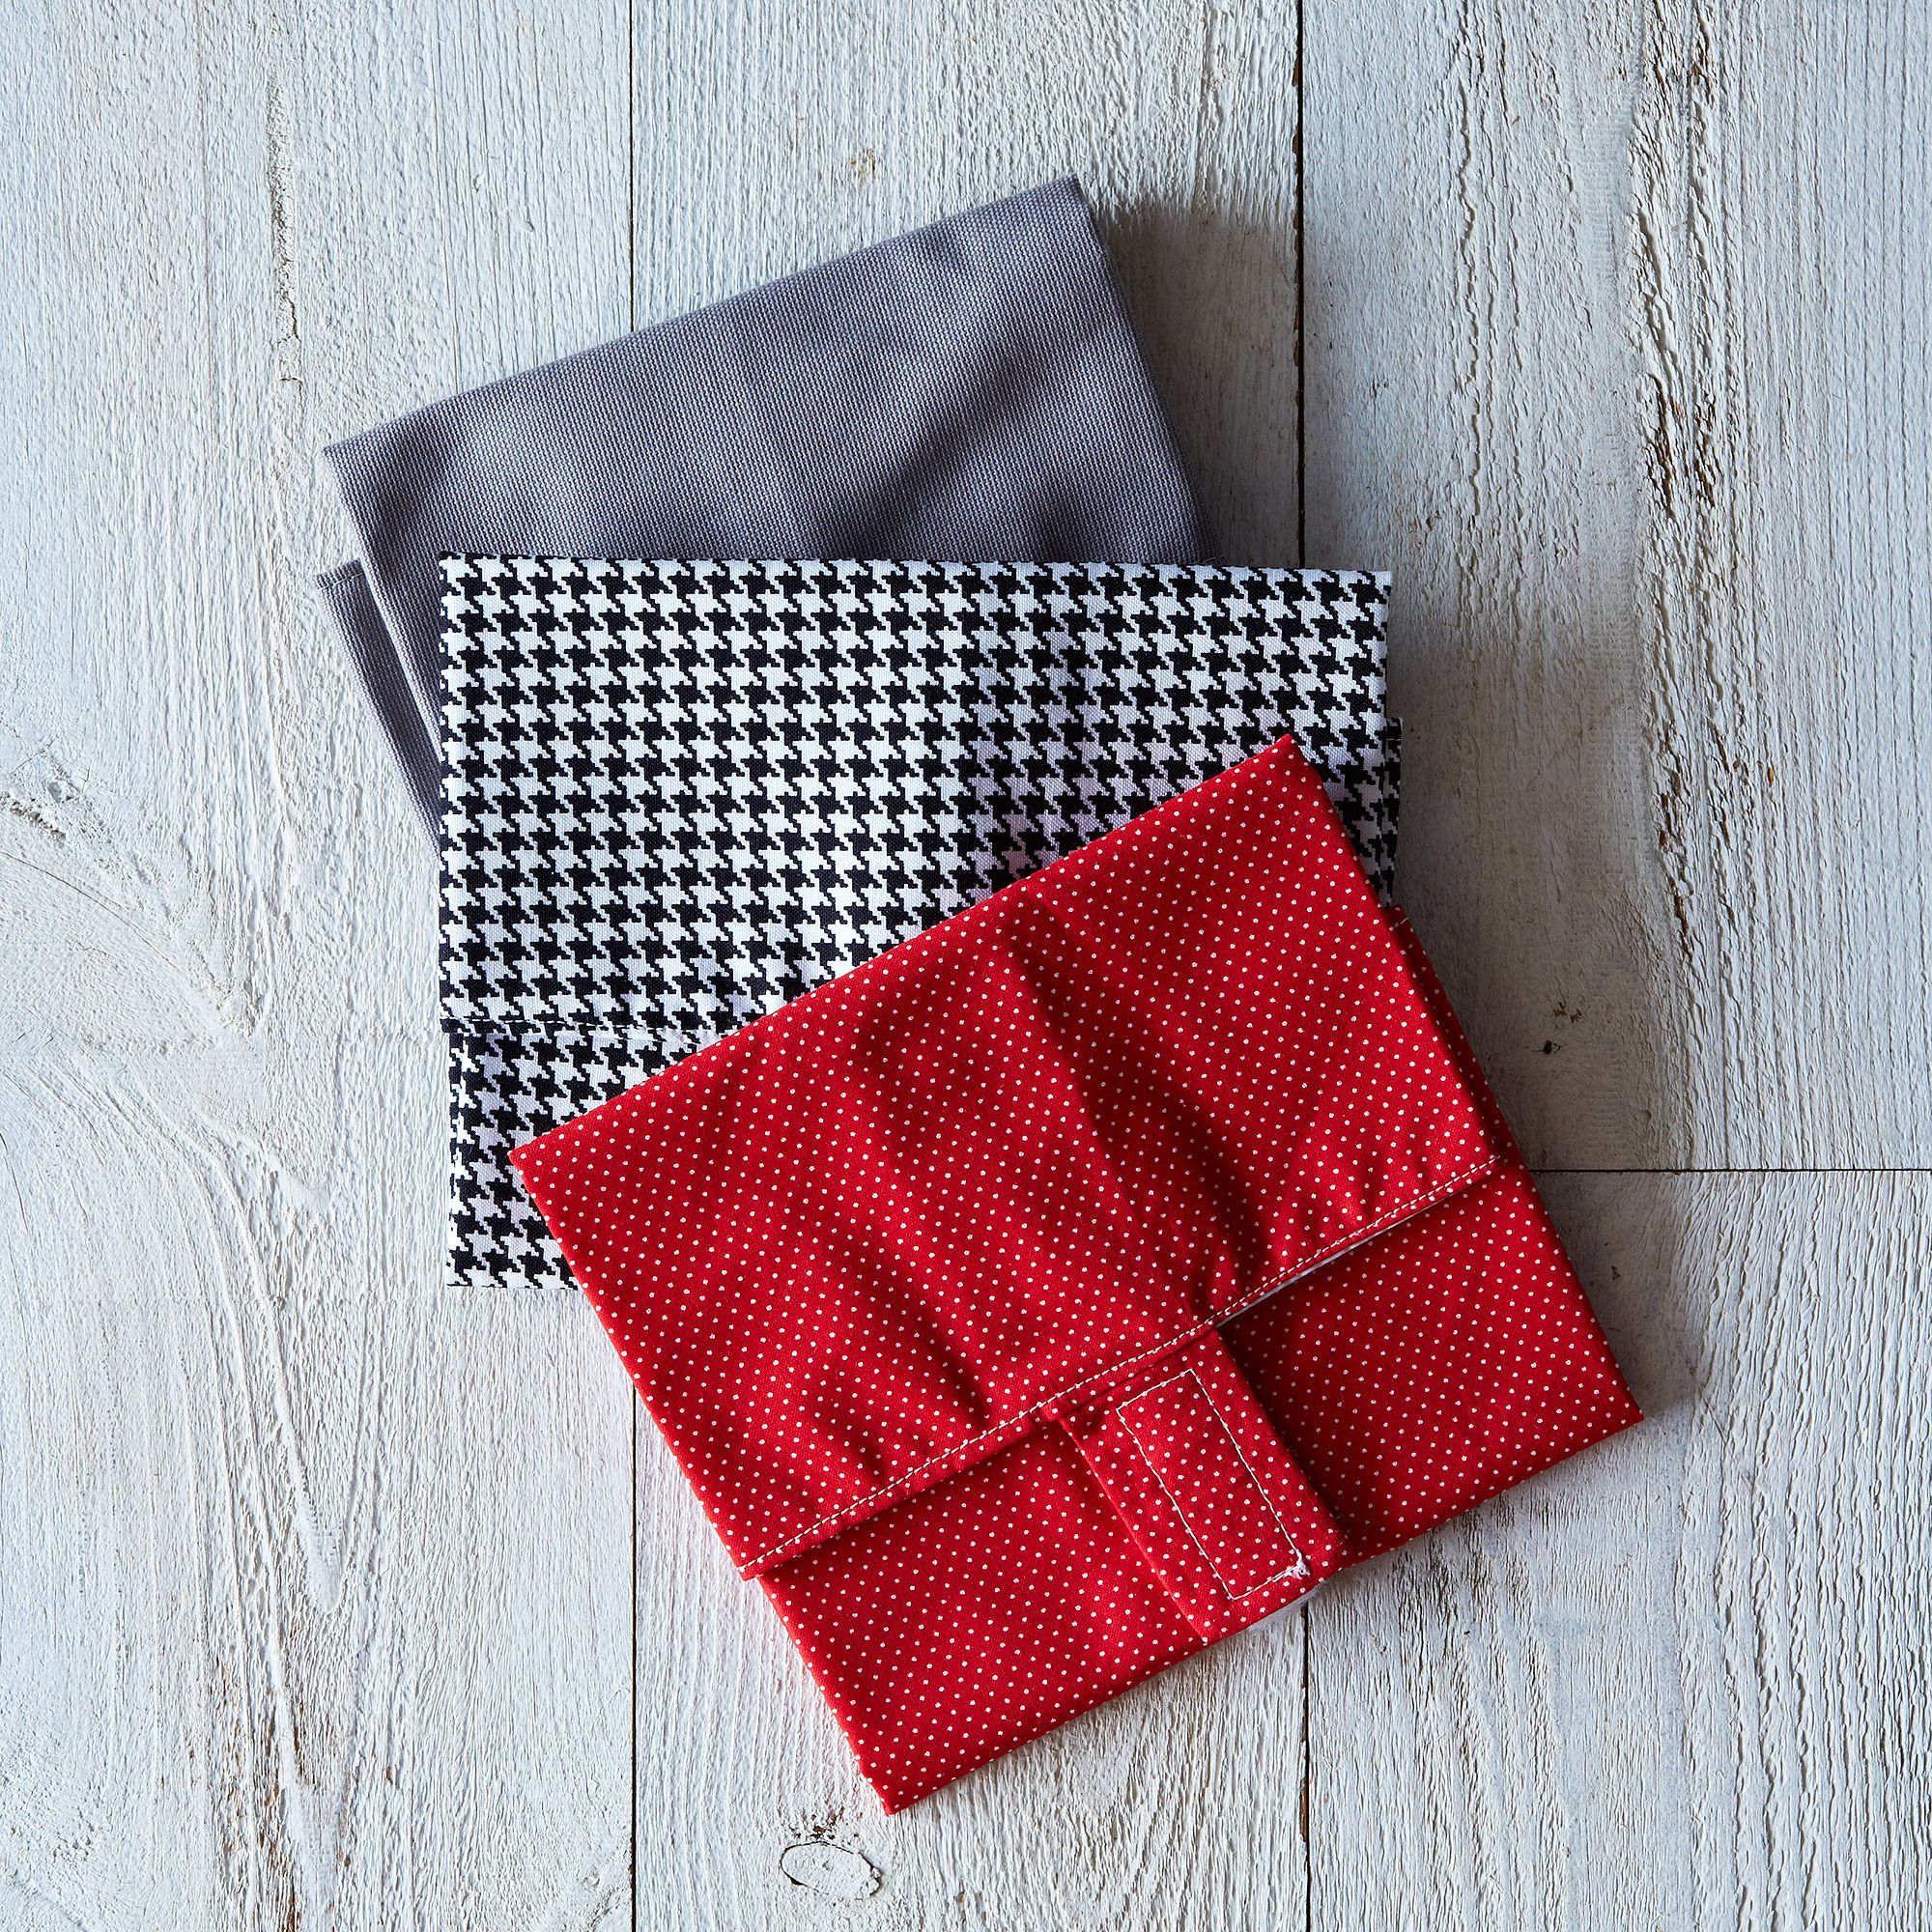 544e739e a0f5 11e5 a190 0ef7535729df  2013 0920 dot army sandwich wraps houndstooth slate red 016